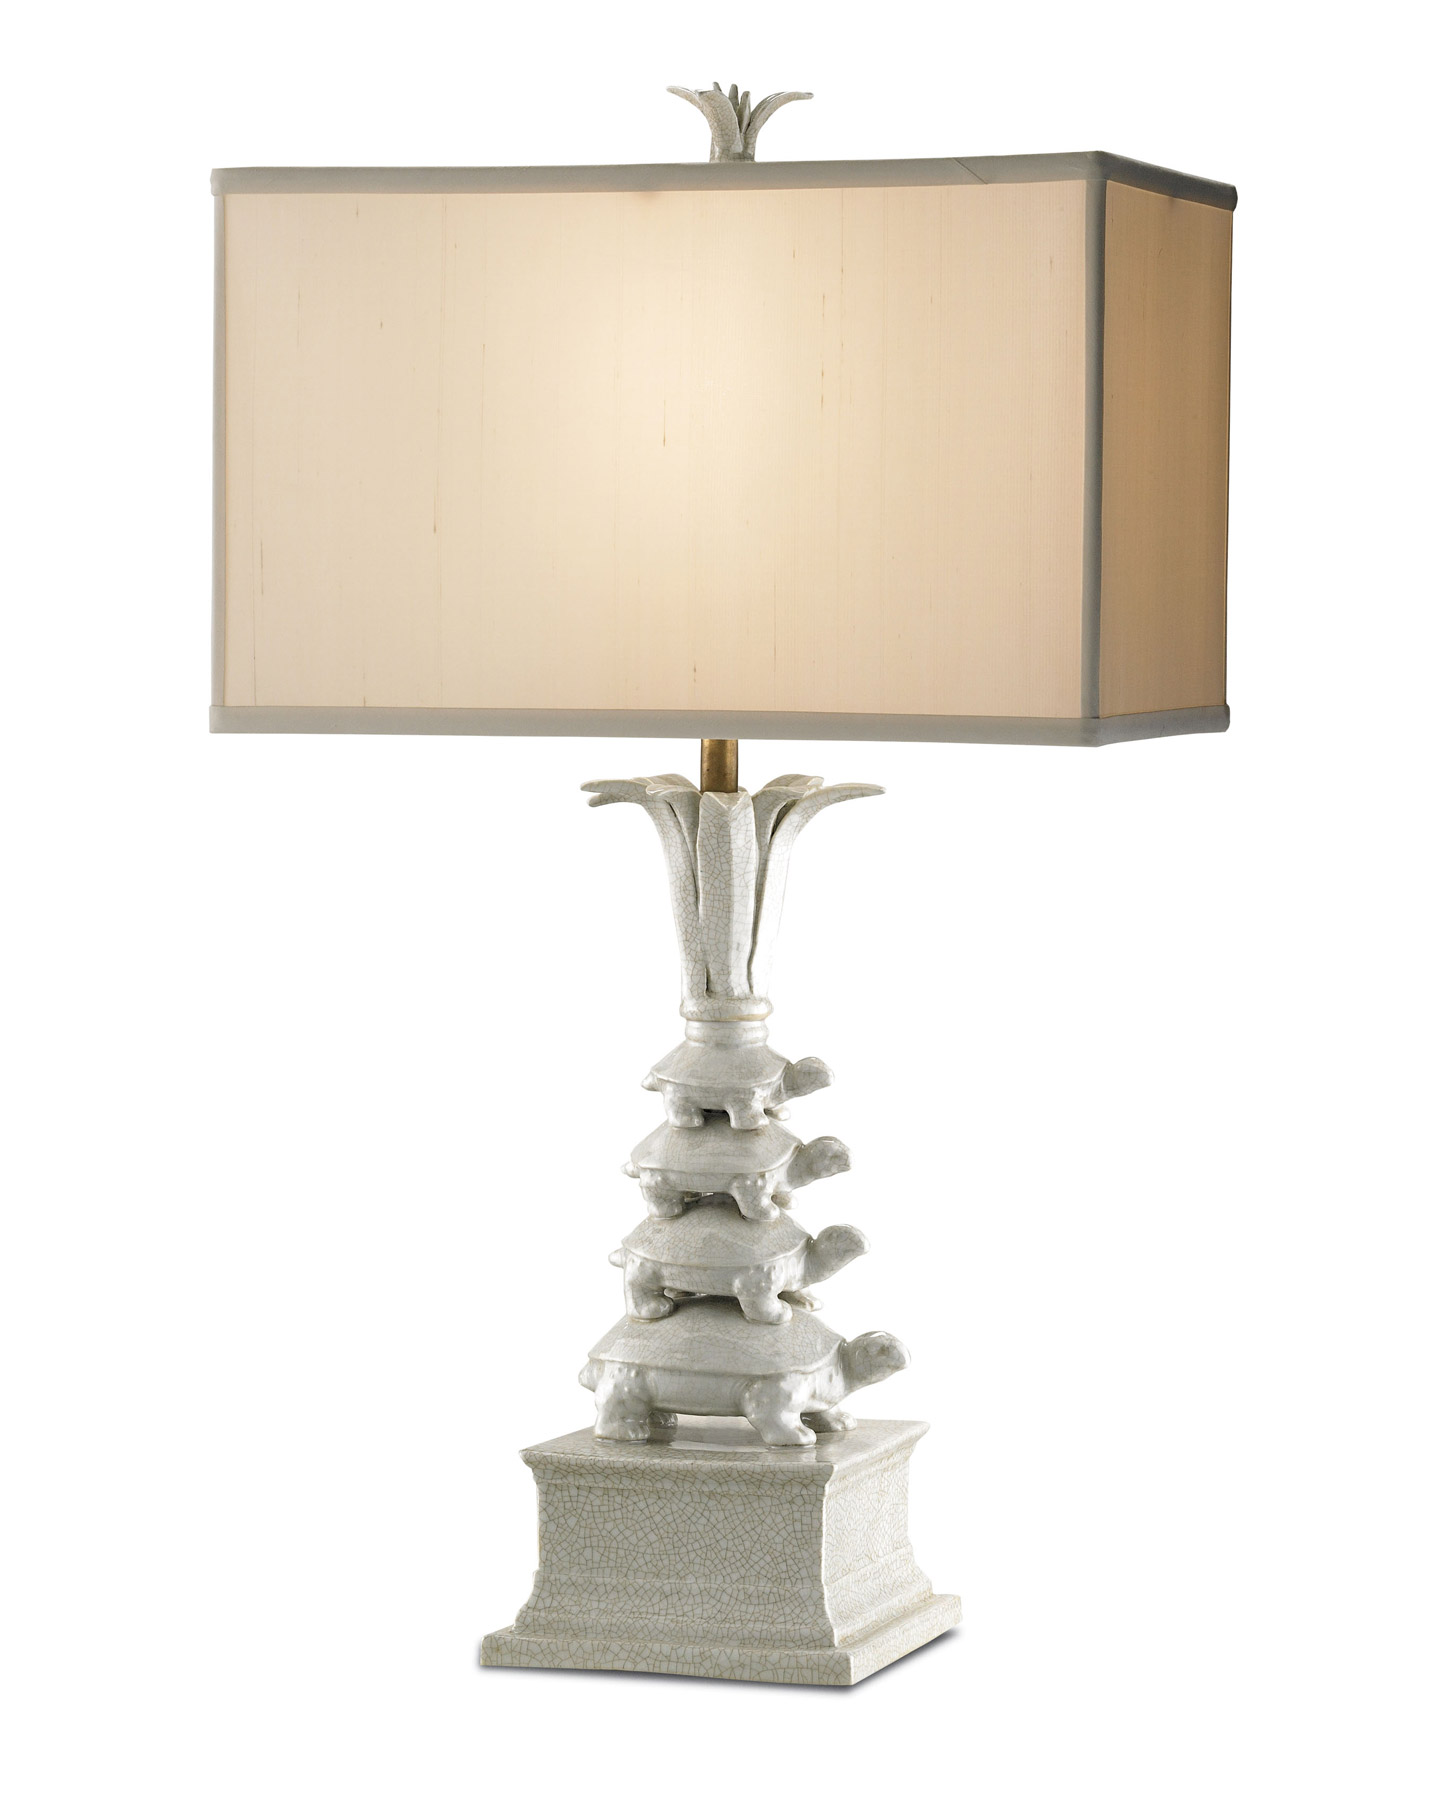 lamps table lamps standard table lamps currey and company. Black Bedroom Furniture Sets. Home Design Ideas